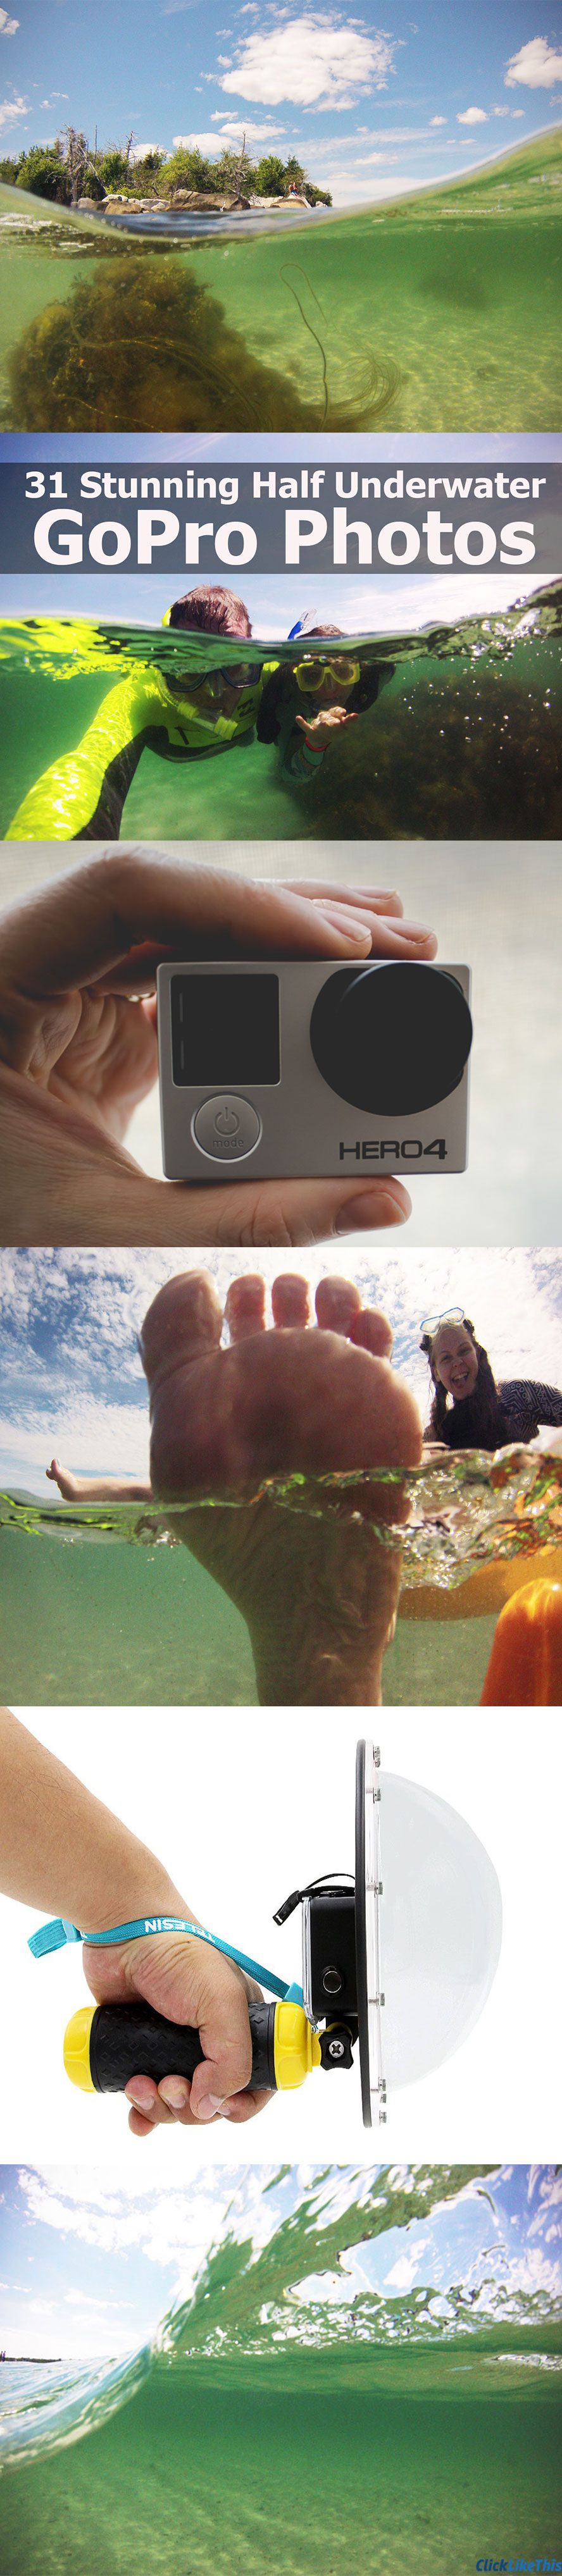 6 Tips for shooting great half underwater GoPro photos. #gopro #underwater #underwaterphotography